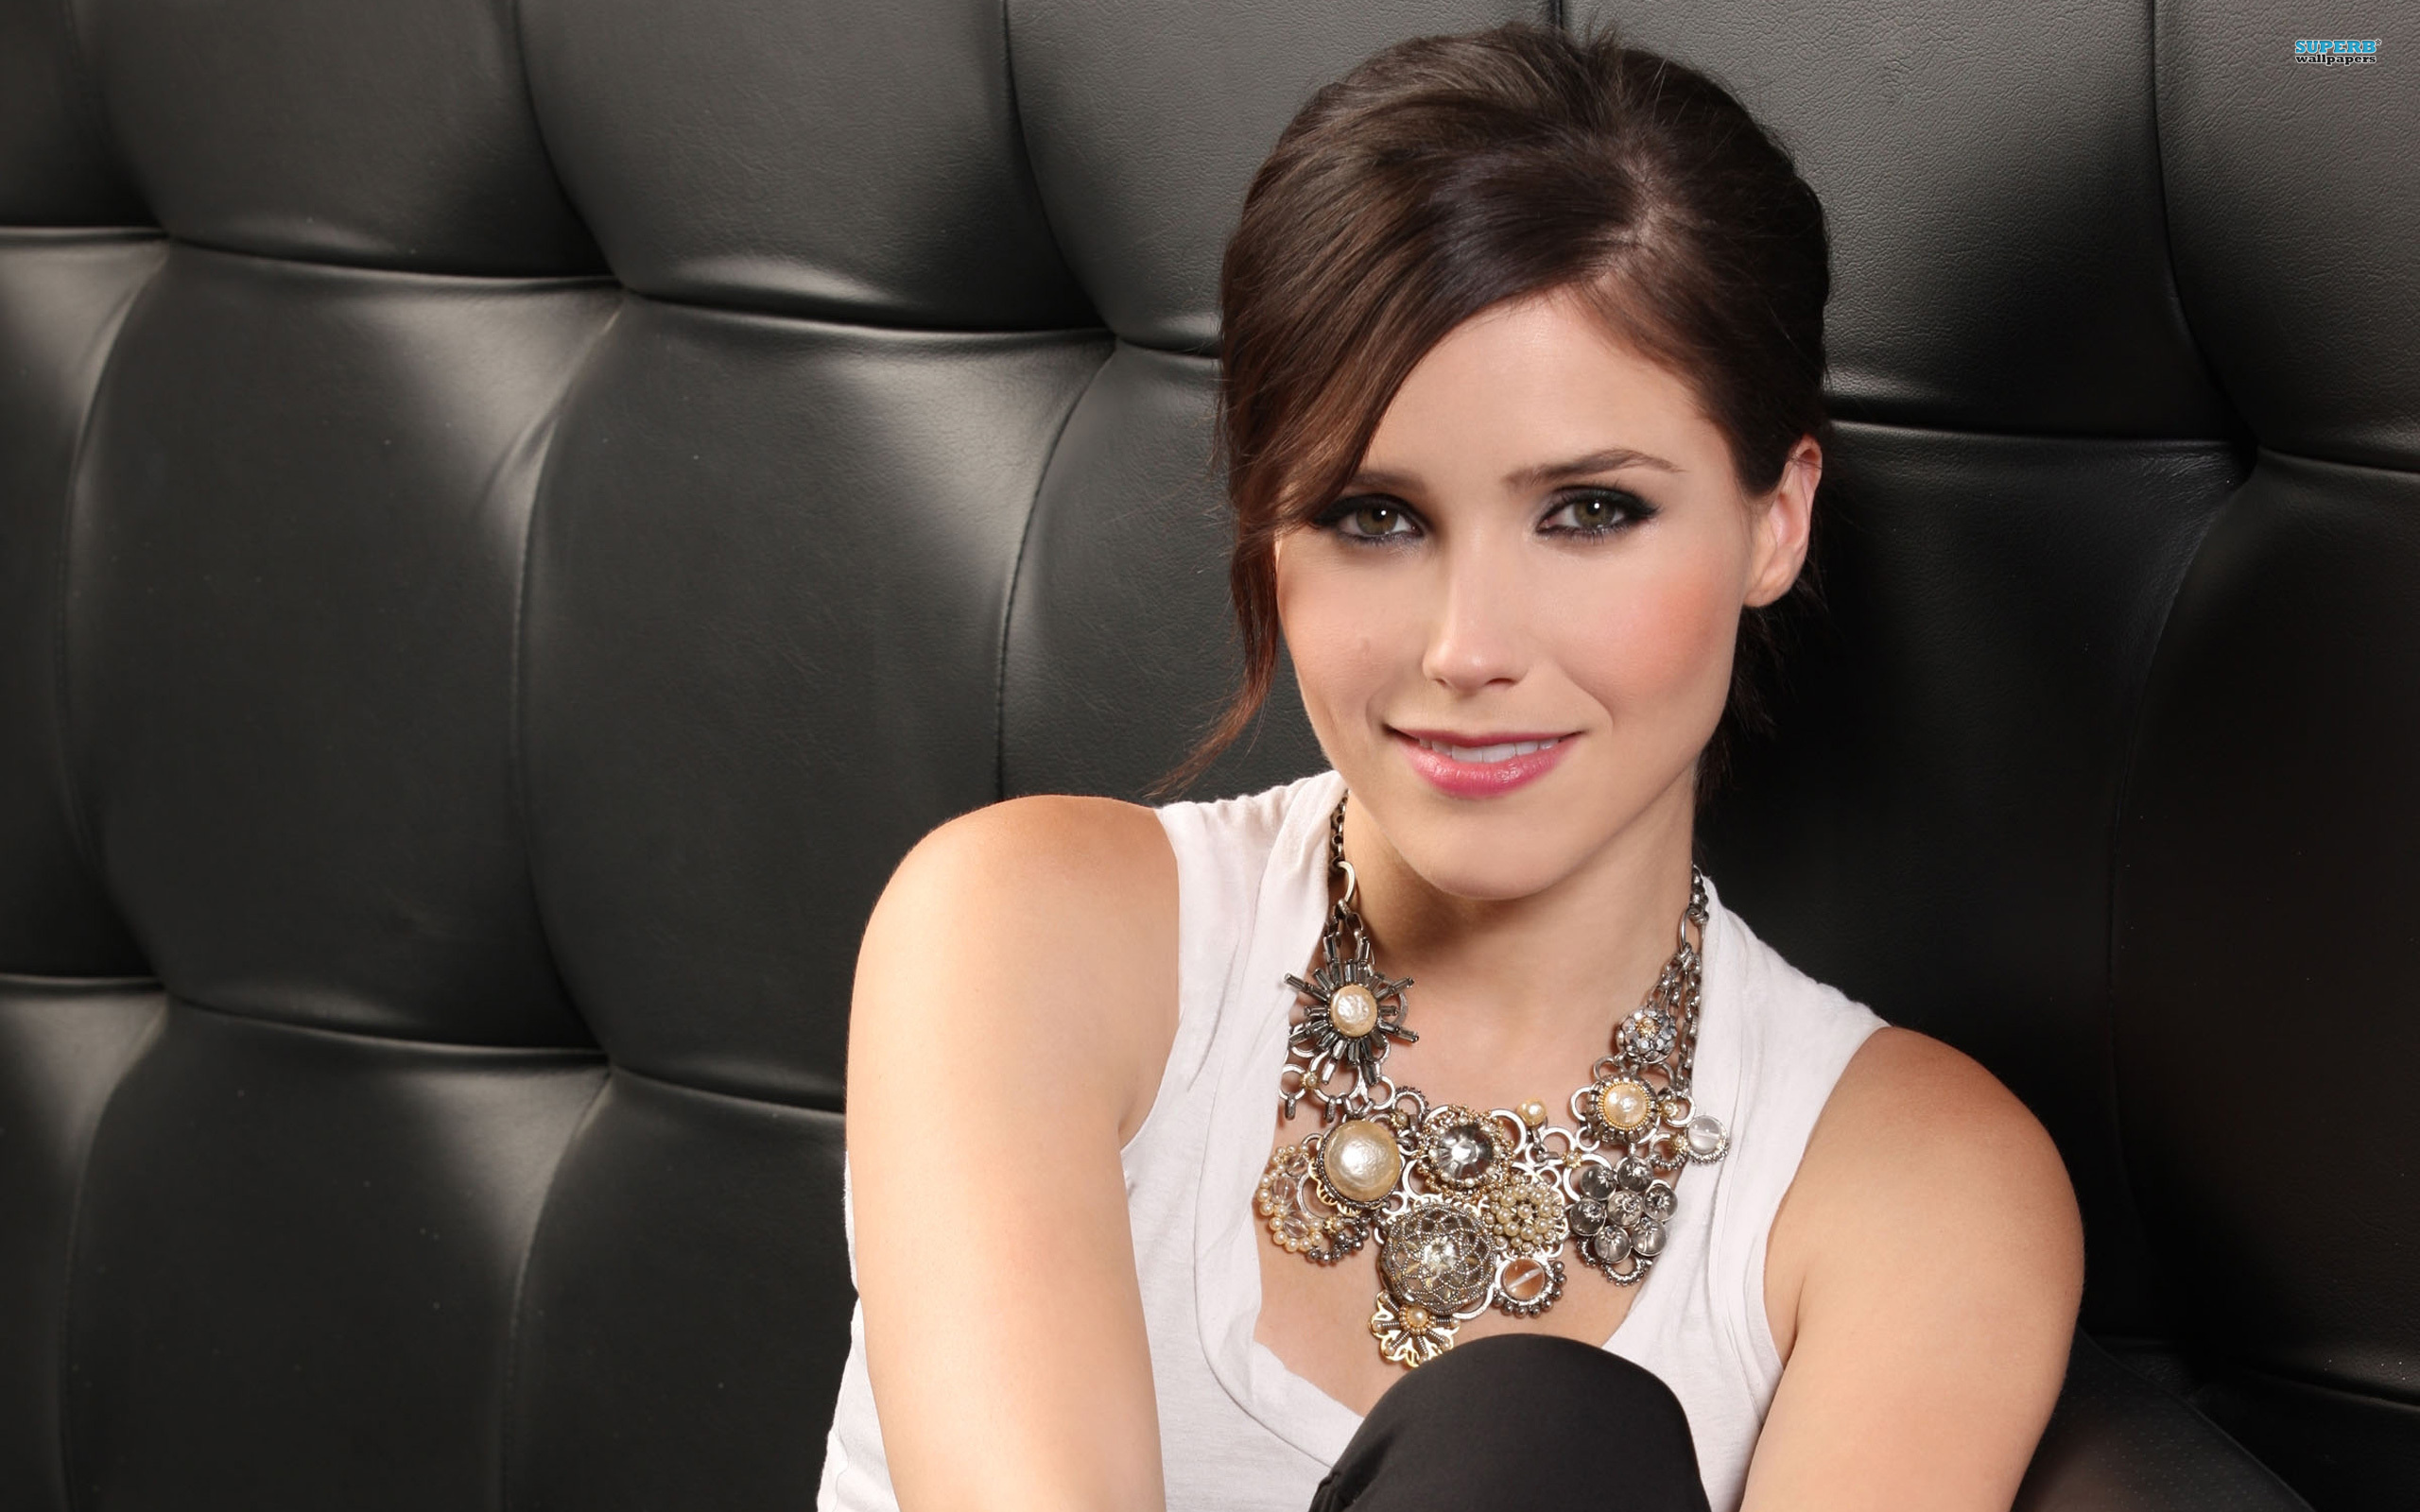 Sophia Bush wallpaper 2560x1600 jpg